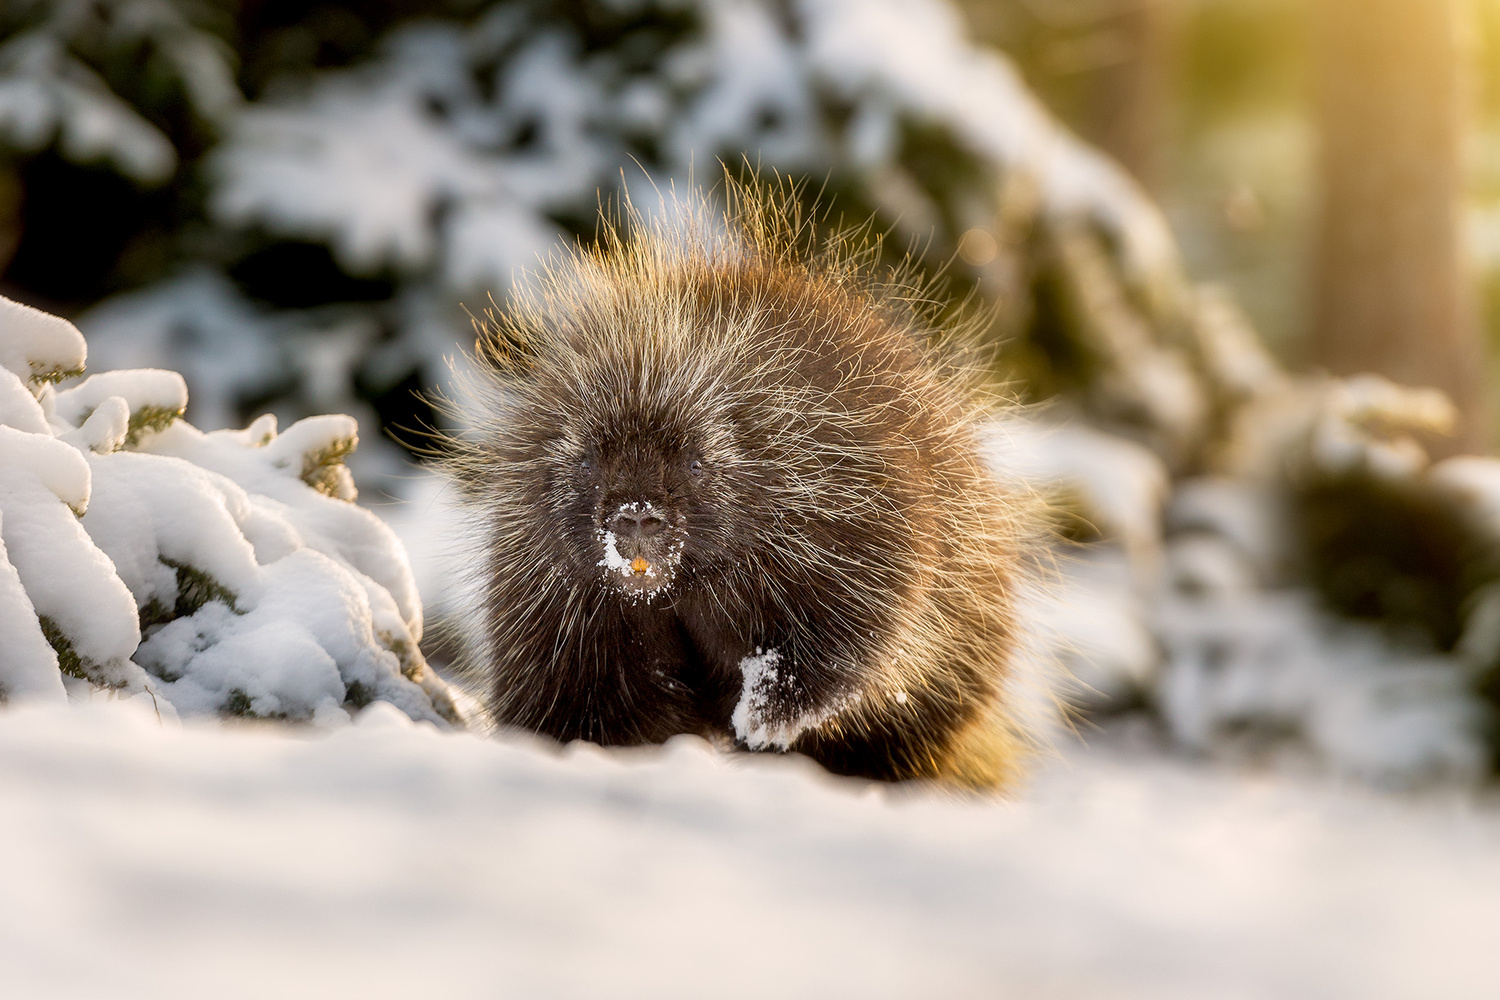 Alert porcupine by Michael Higgins